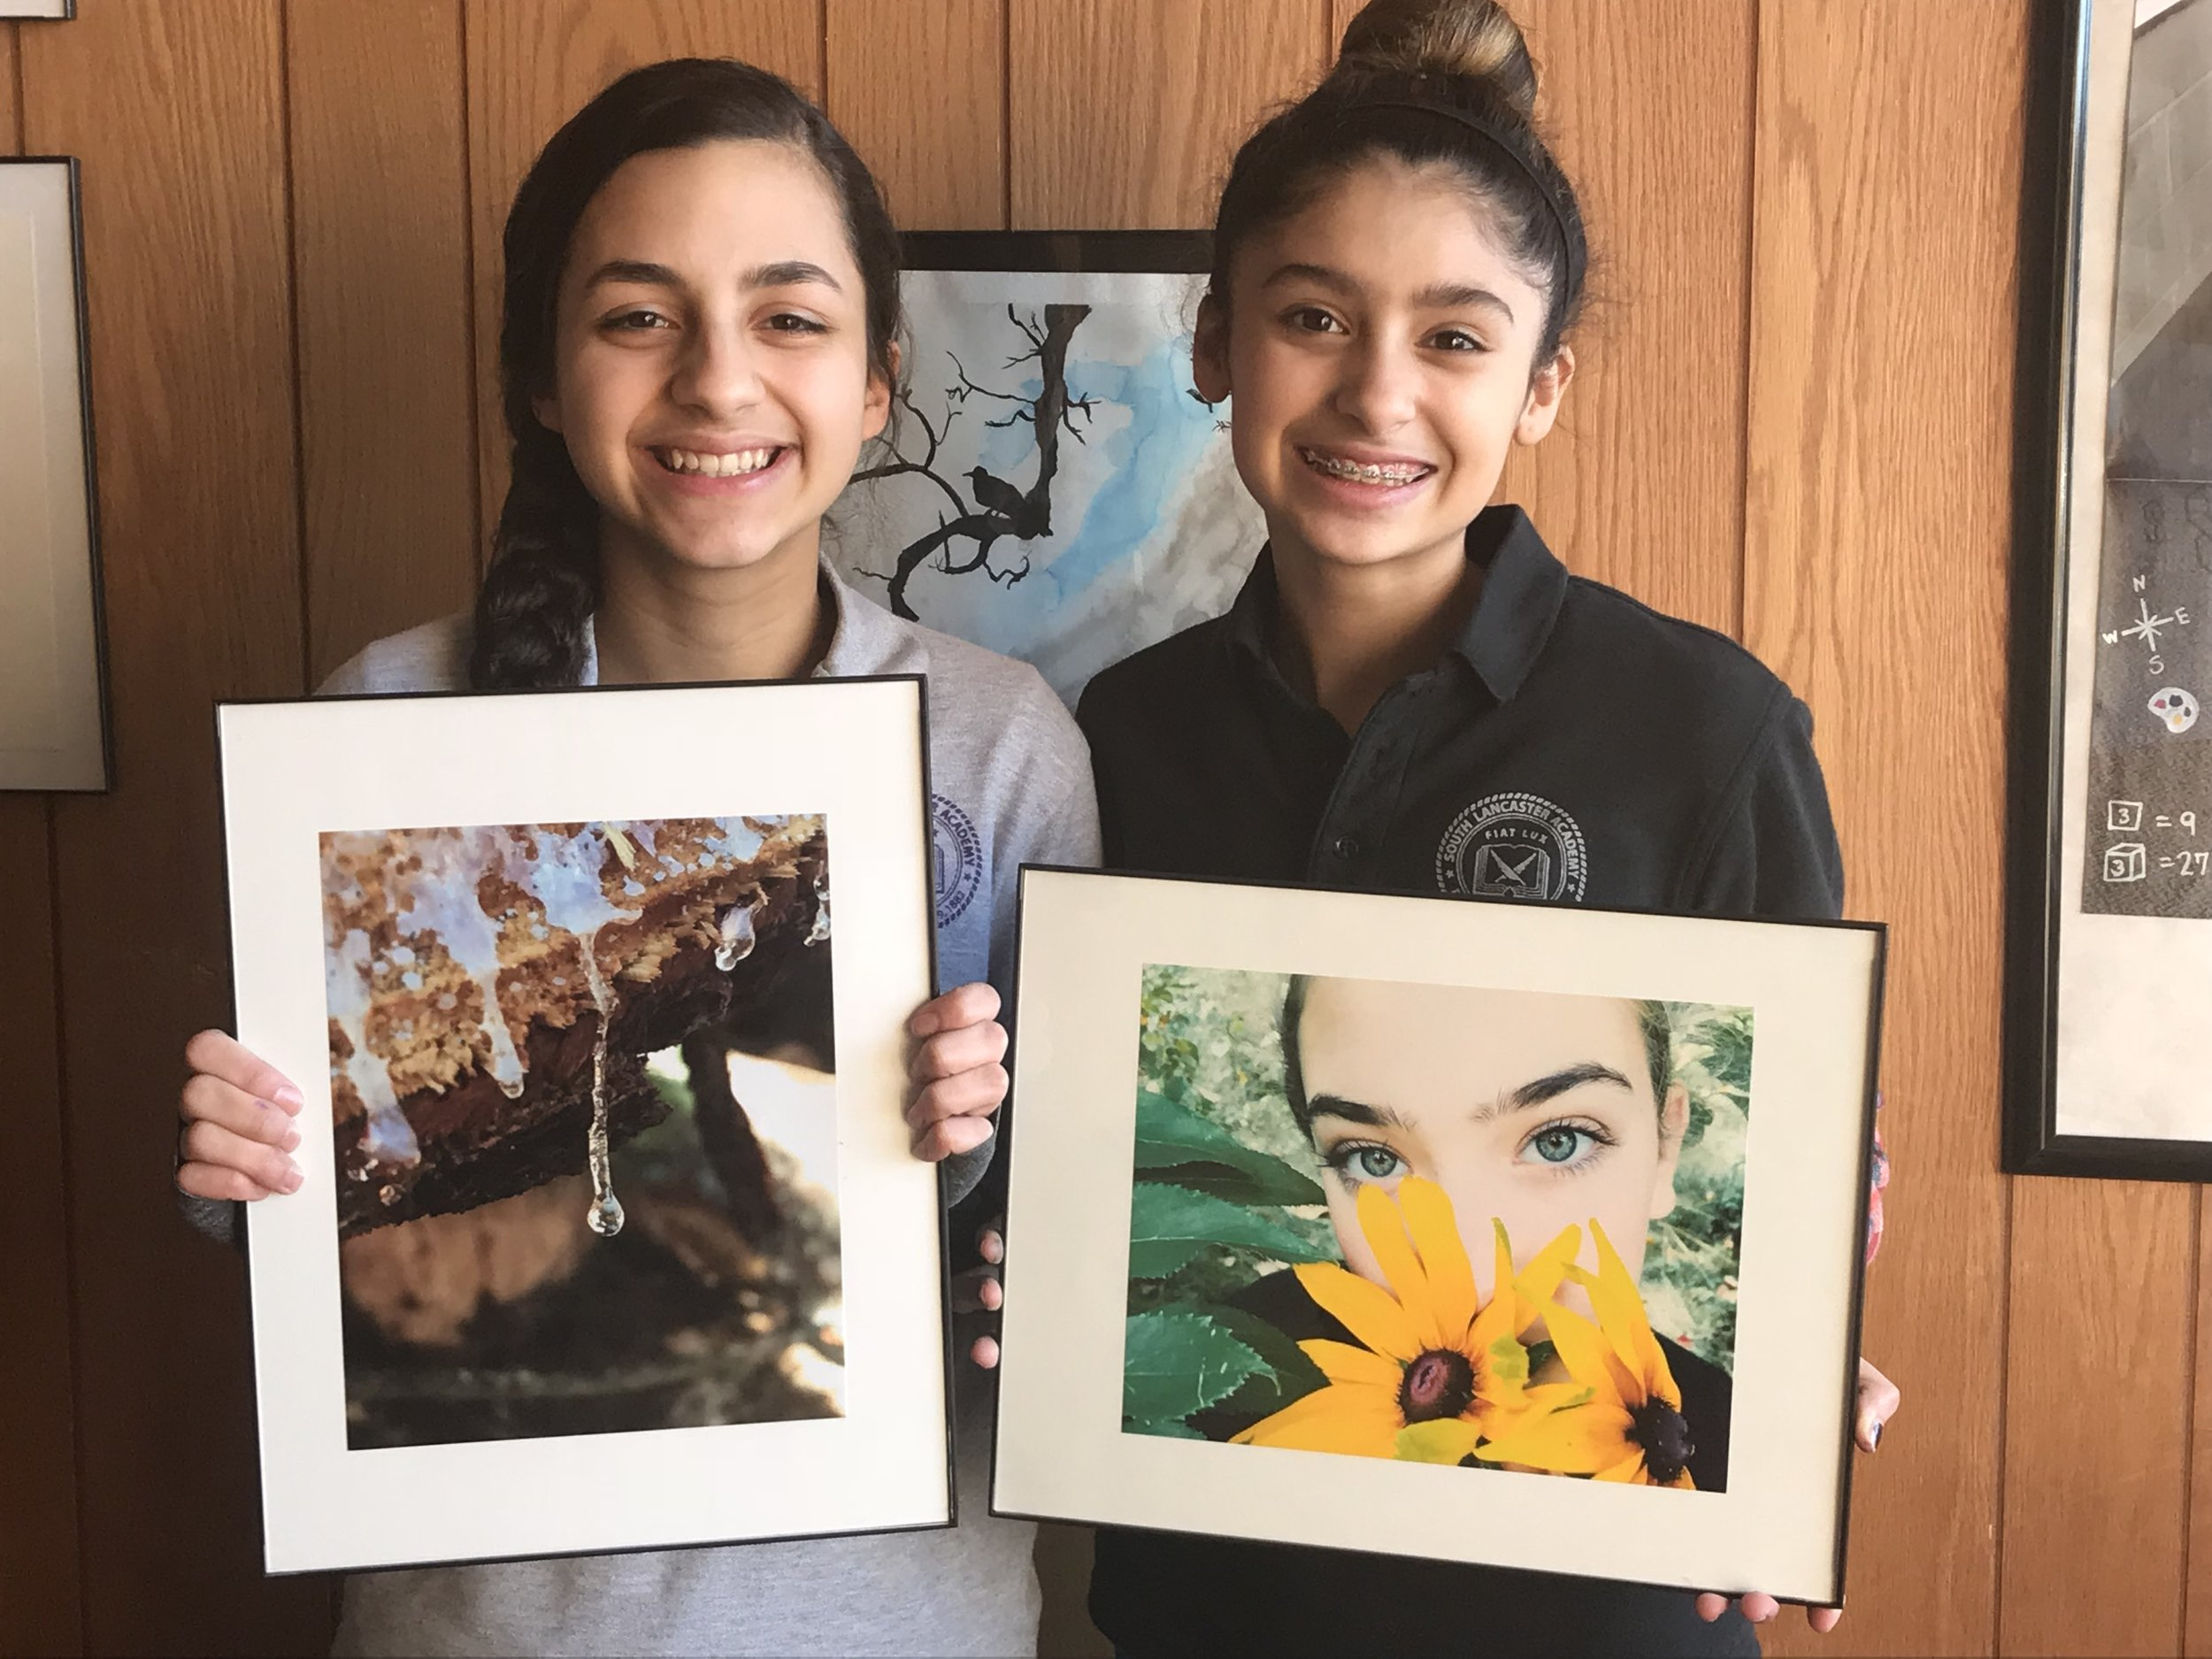 Stephanie De Abreu and Emma Ciccone with their photographs.